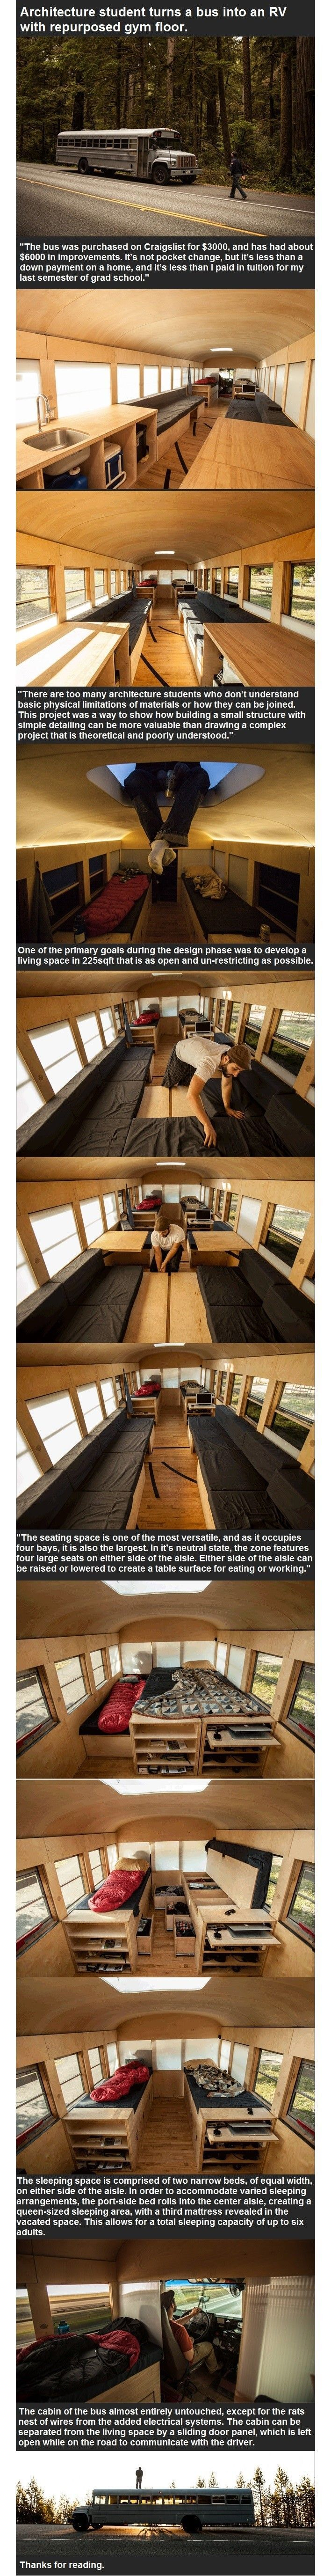 96 best Bus living and Tiny Houses images on Pinterest | Tiny house ...